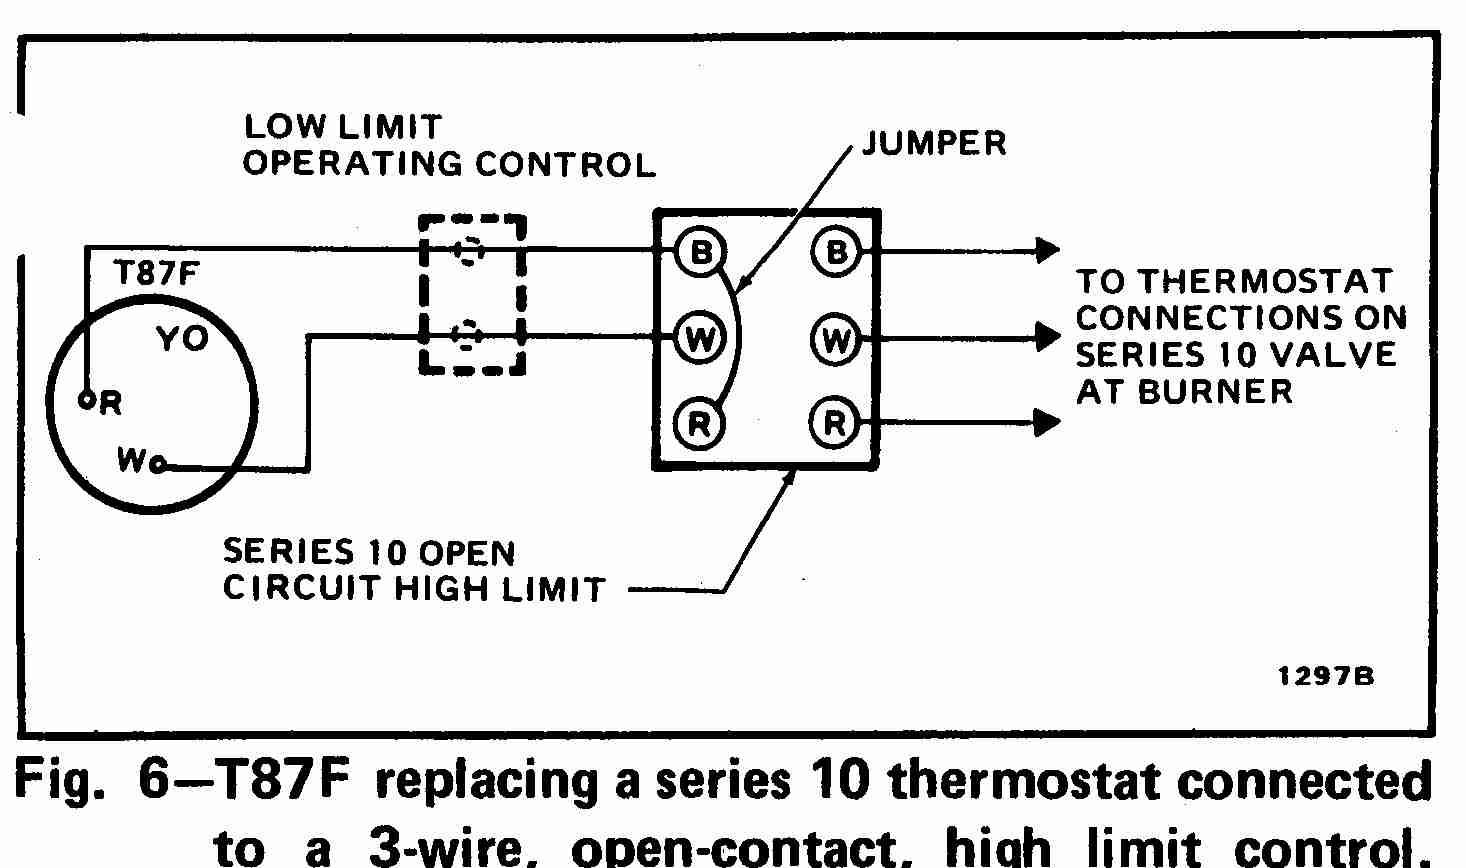 TT_T87F_0002_3WHL_DJF room thermostat wiring diagrams for hvac systems thermostat wiring diagram at creativeand.co